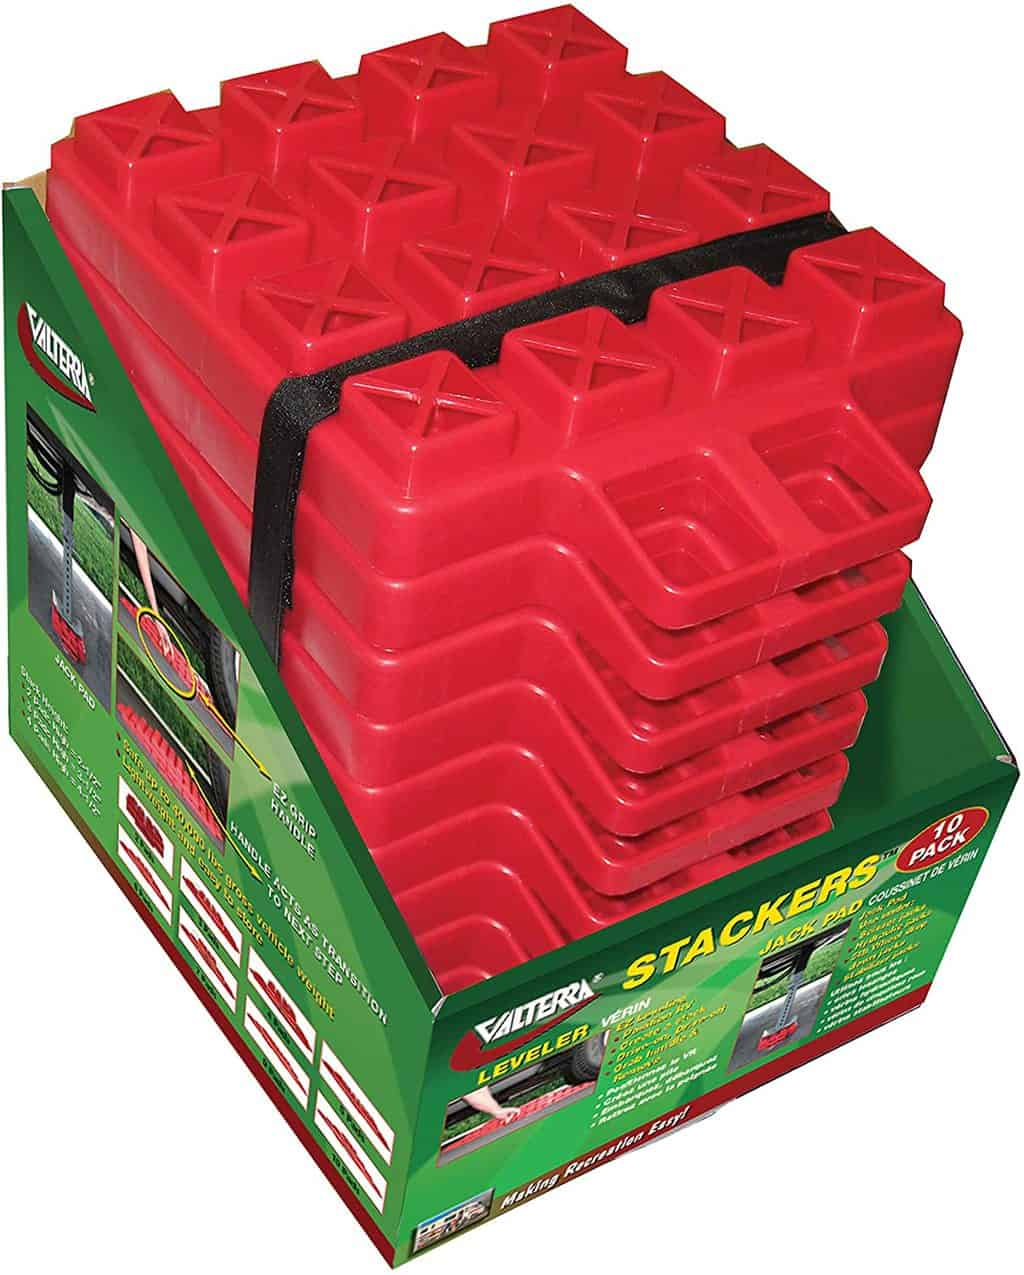 13. Valterra Red A10-0918 Stackers Leveler